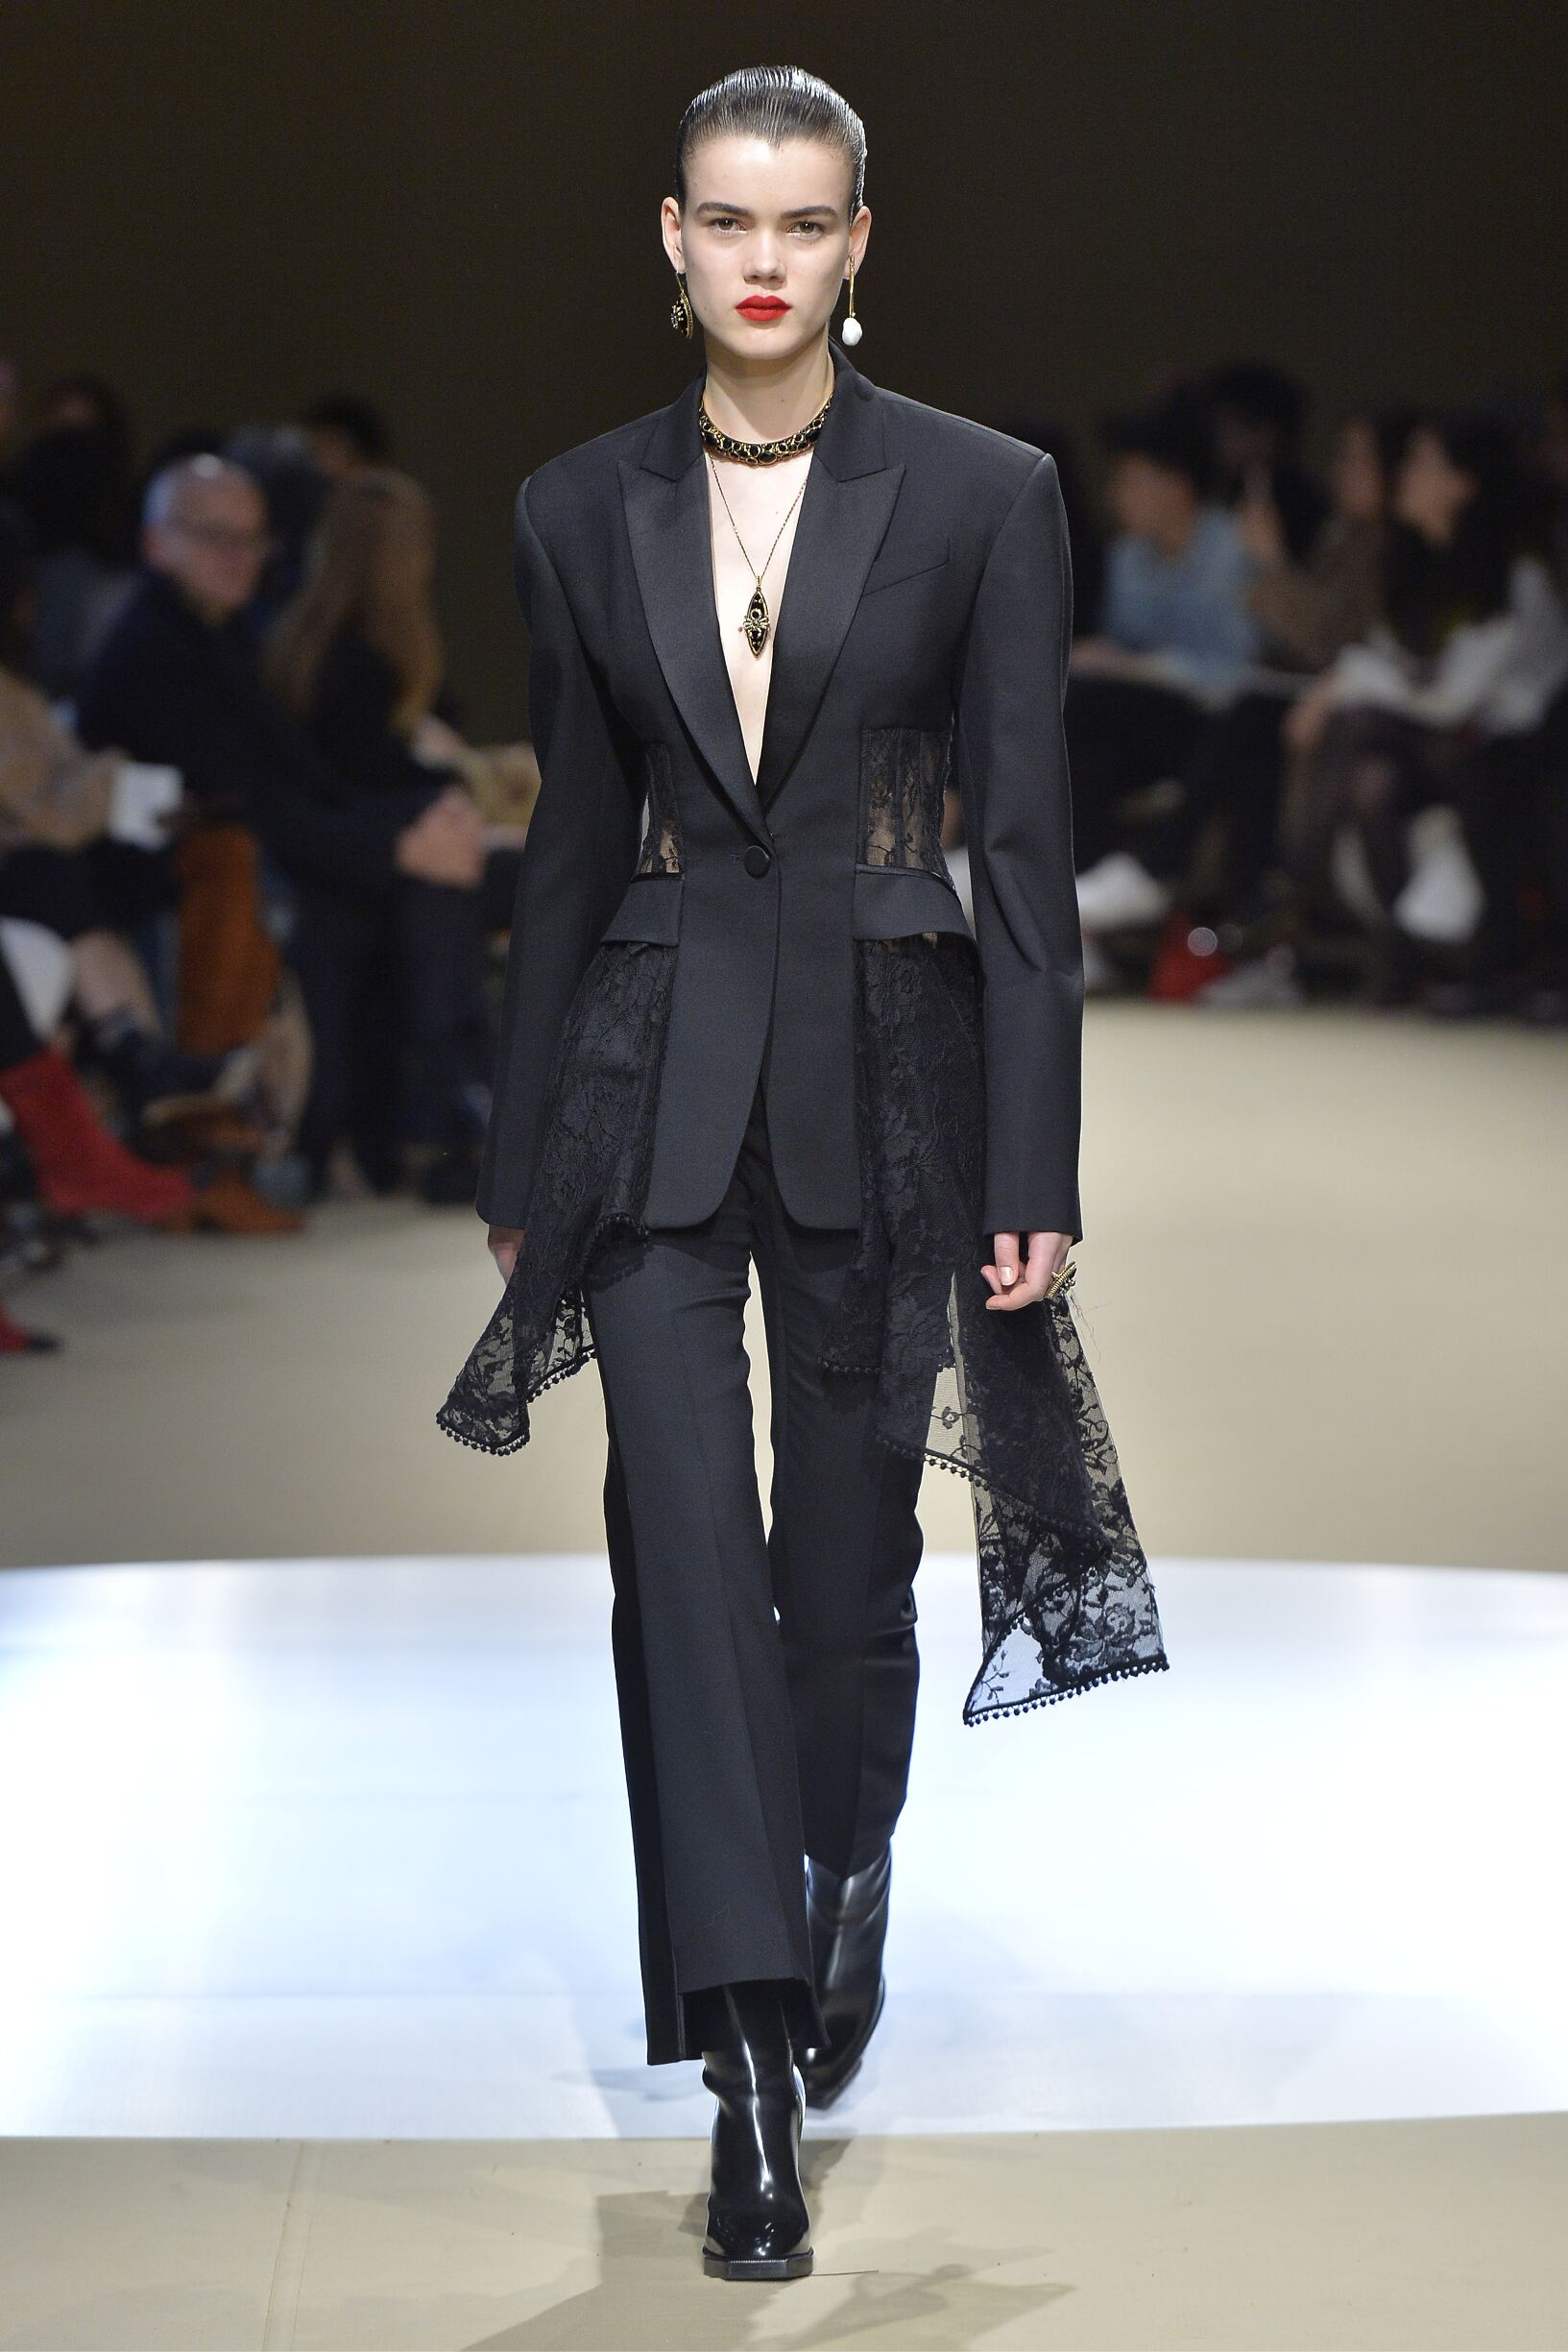 Fall Fashion Woman Trends 2018 Alexander McQueen